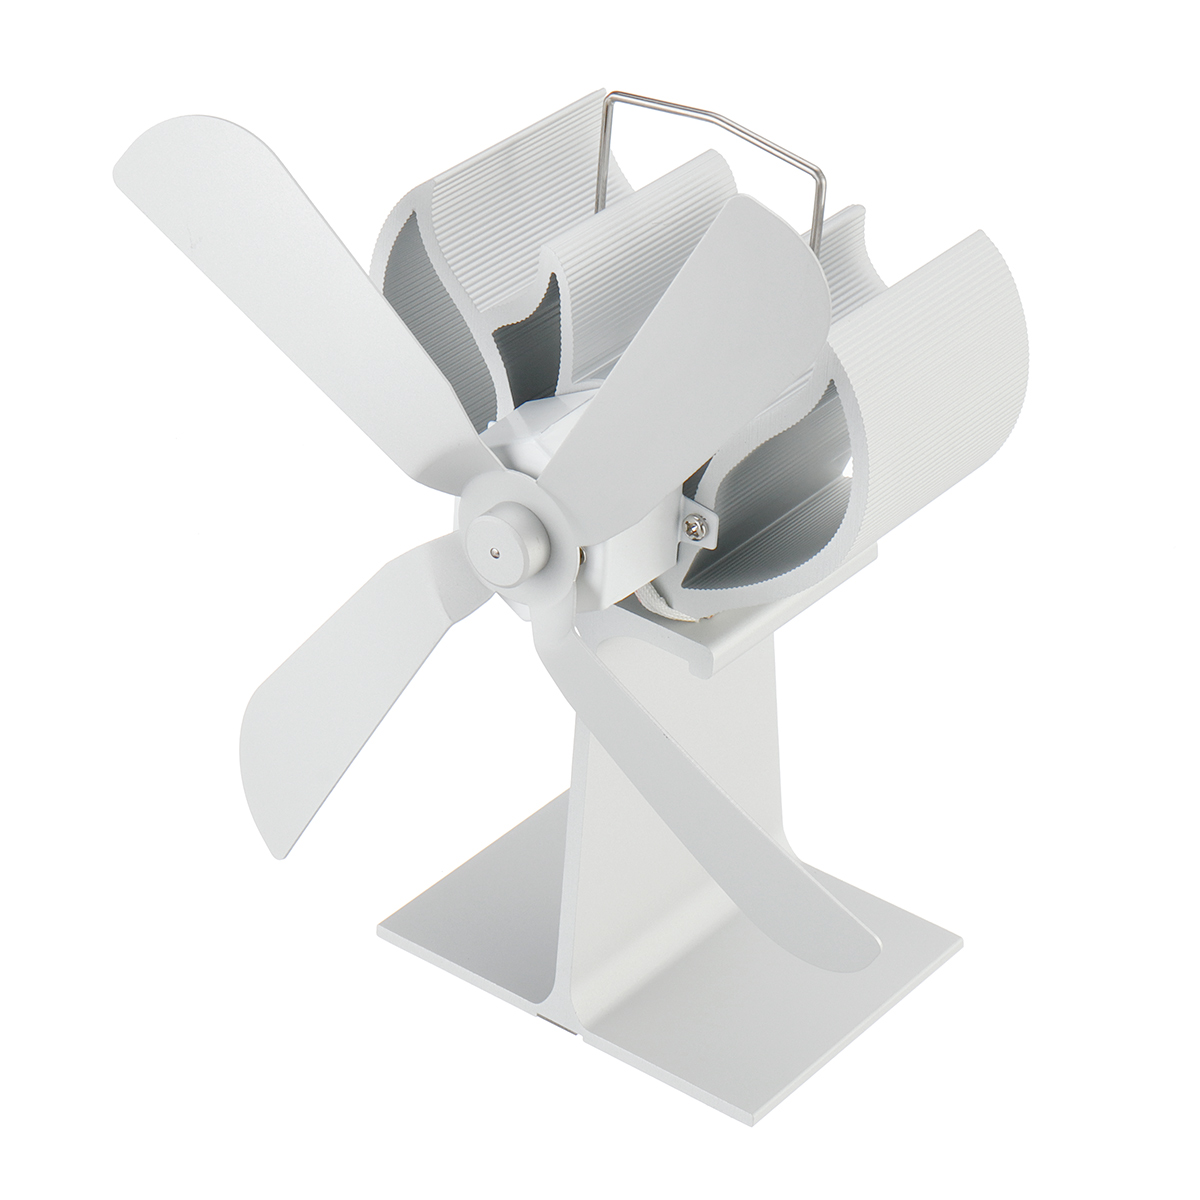 Fireplace 4 Small Blade Heat Powered Stove Fan Log Wood Burner Eco Friendly Quiet Fan Home Efficient Heat Distribution White